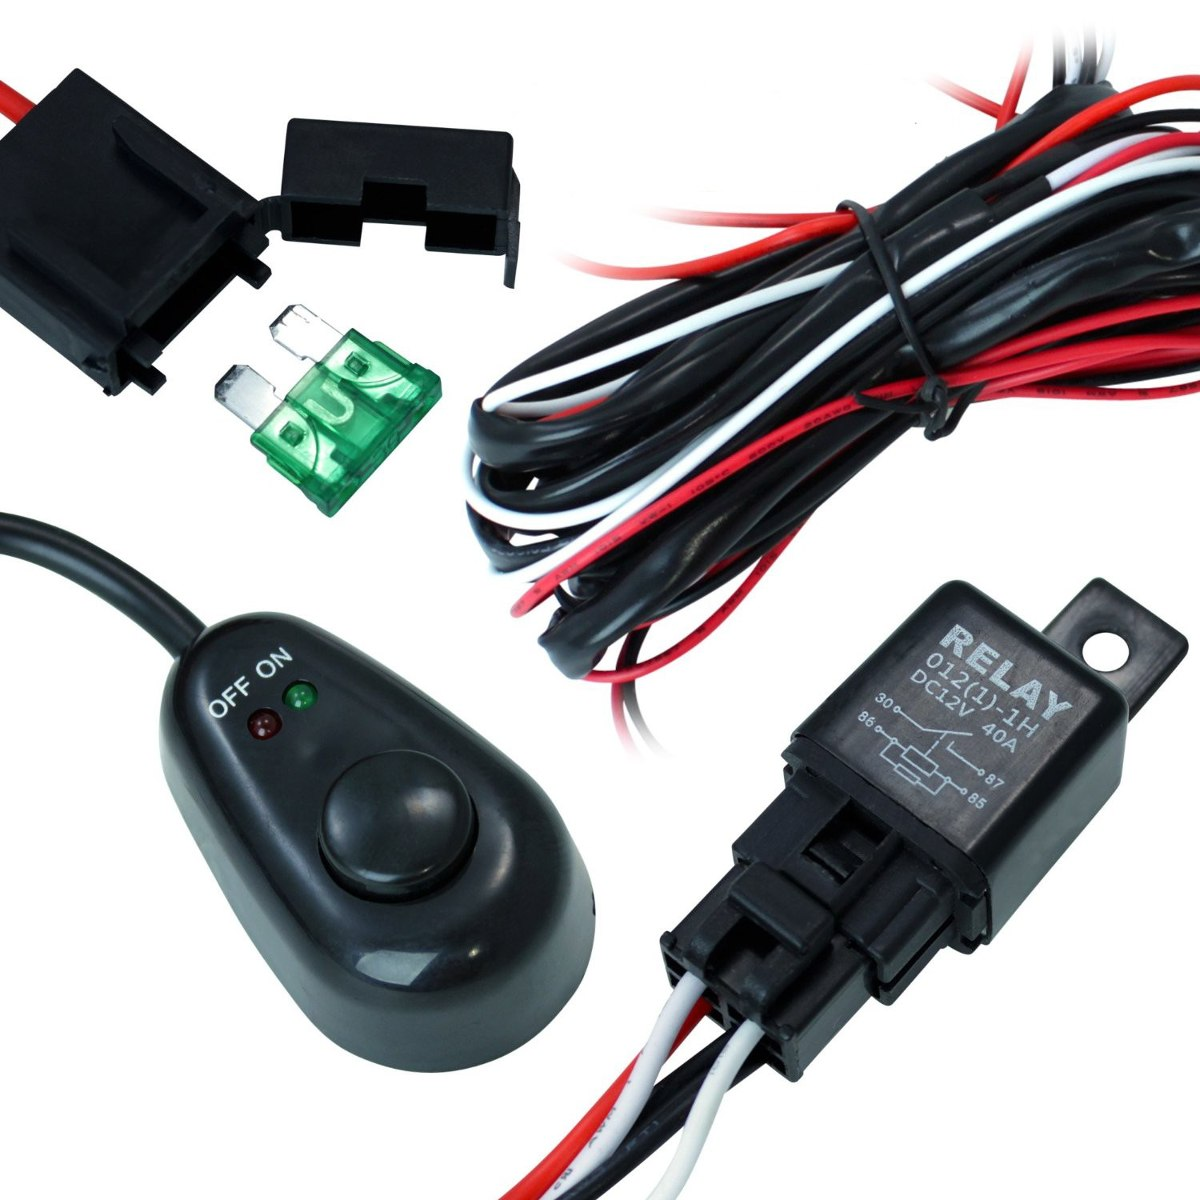 Arnes Cable Switch Relay Para Faros Barras Led Jeep 4x4